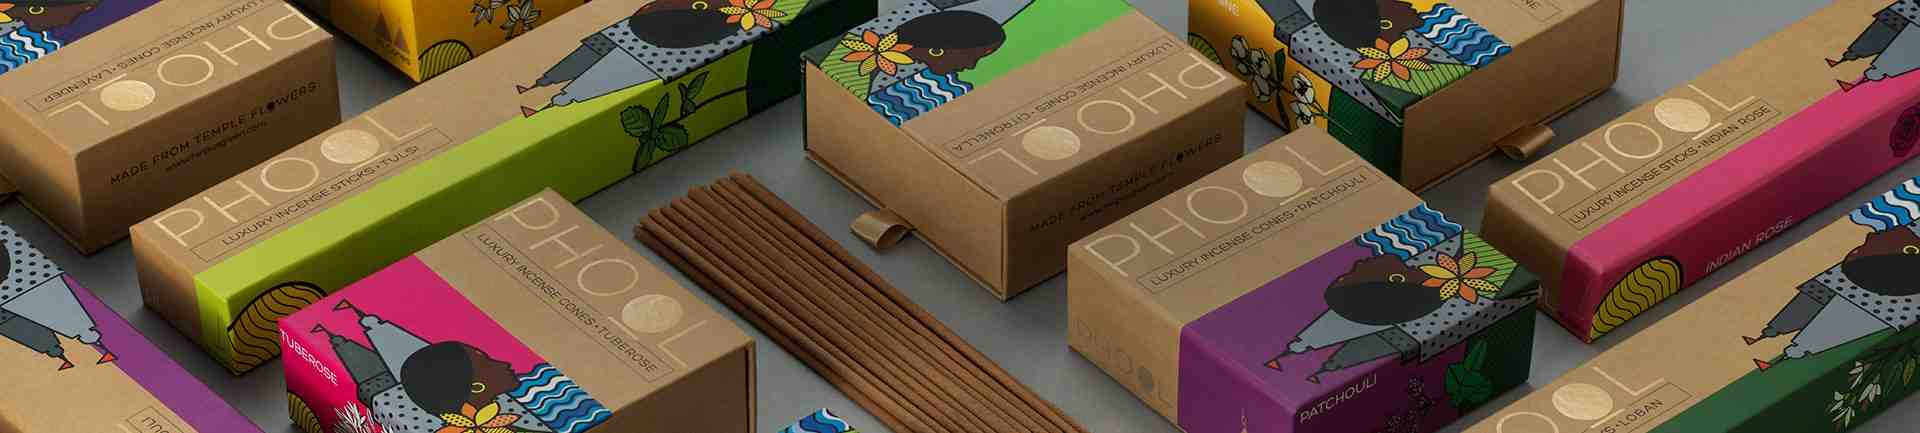 Phool Luxury Incense Sticks and Cones